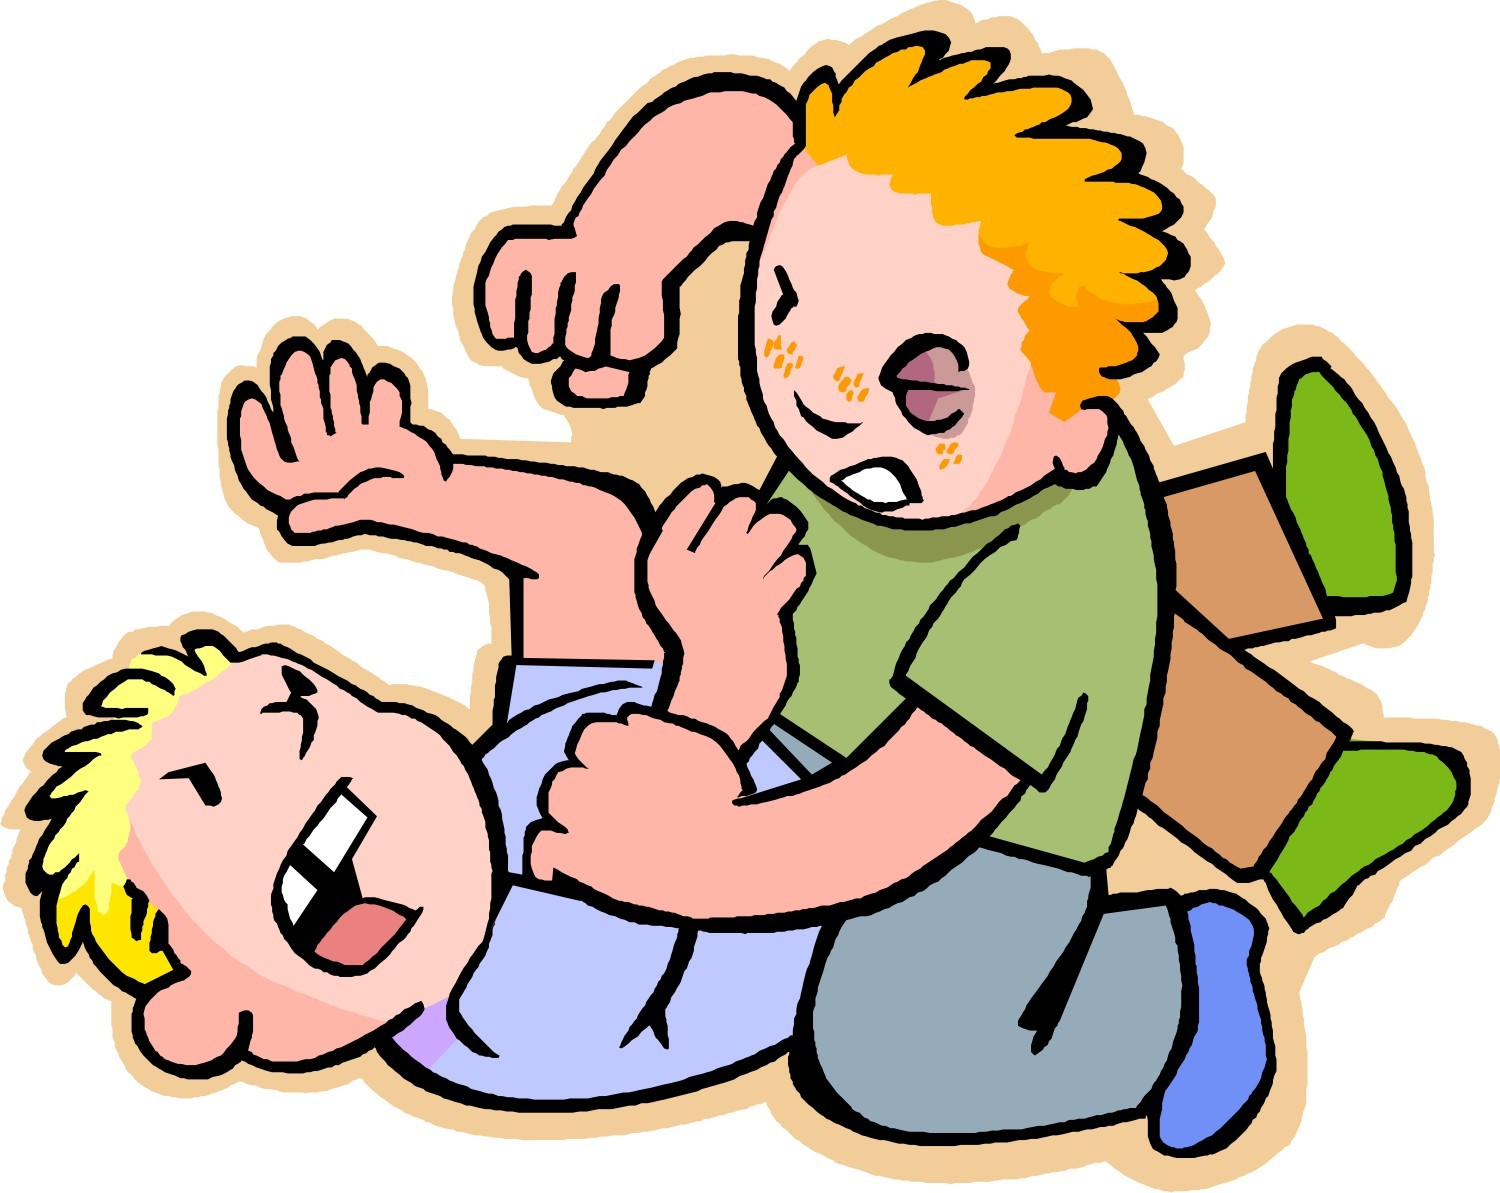 vector free download Kids fight clipart. Free students fighting cliparts